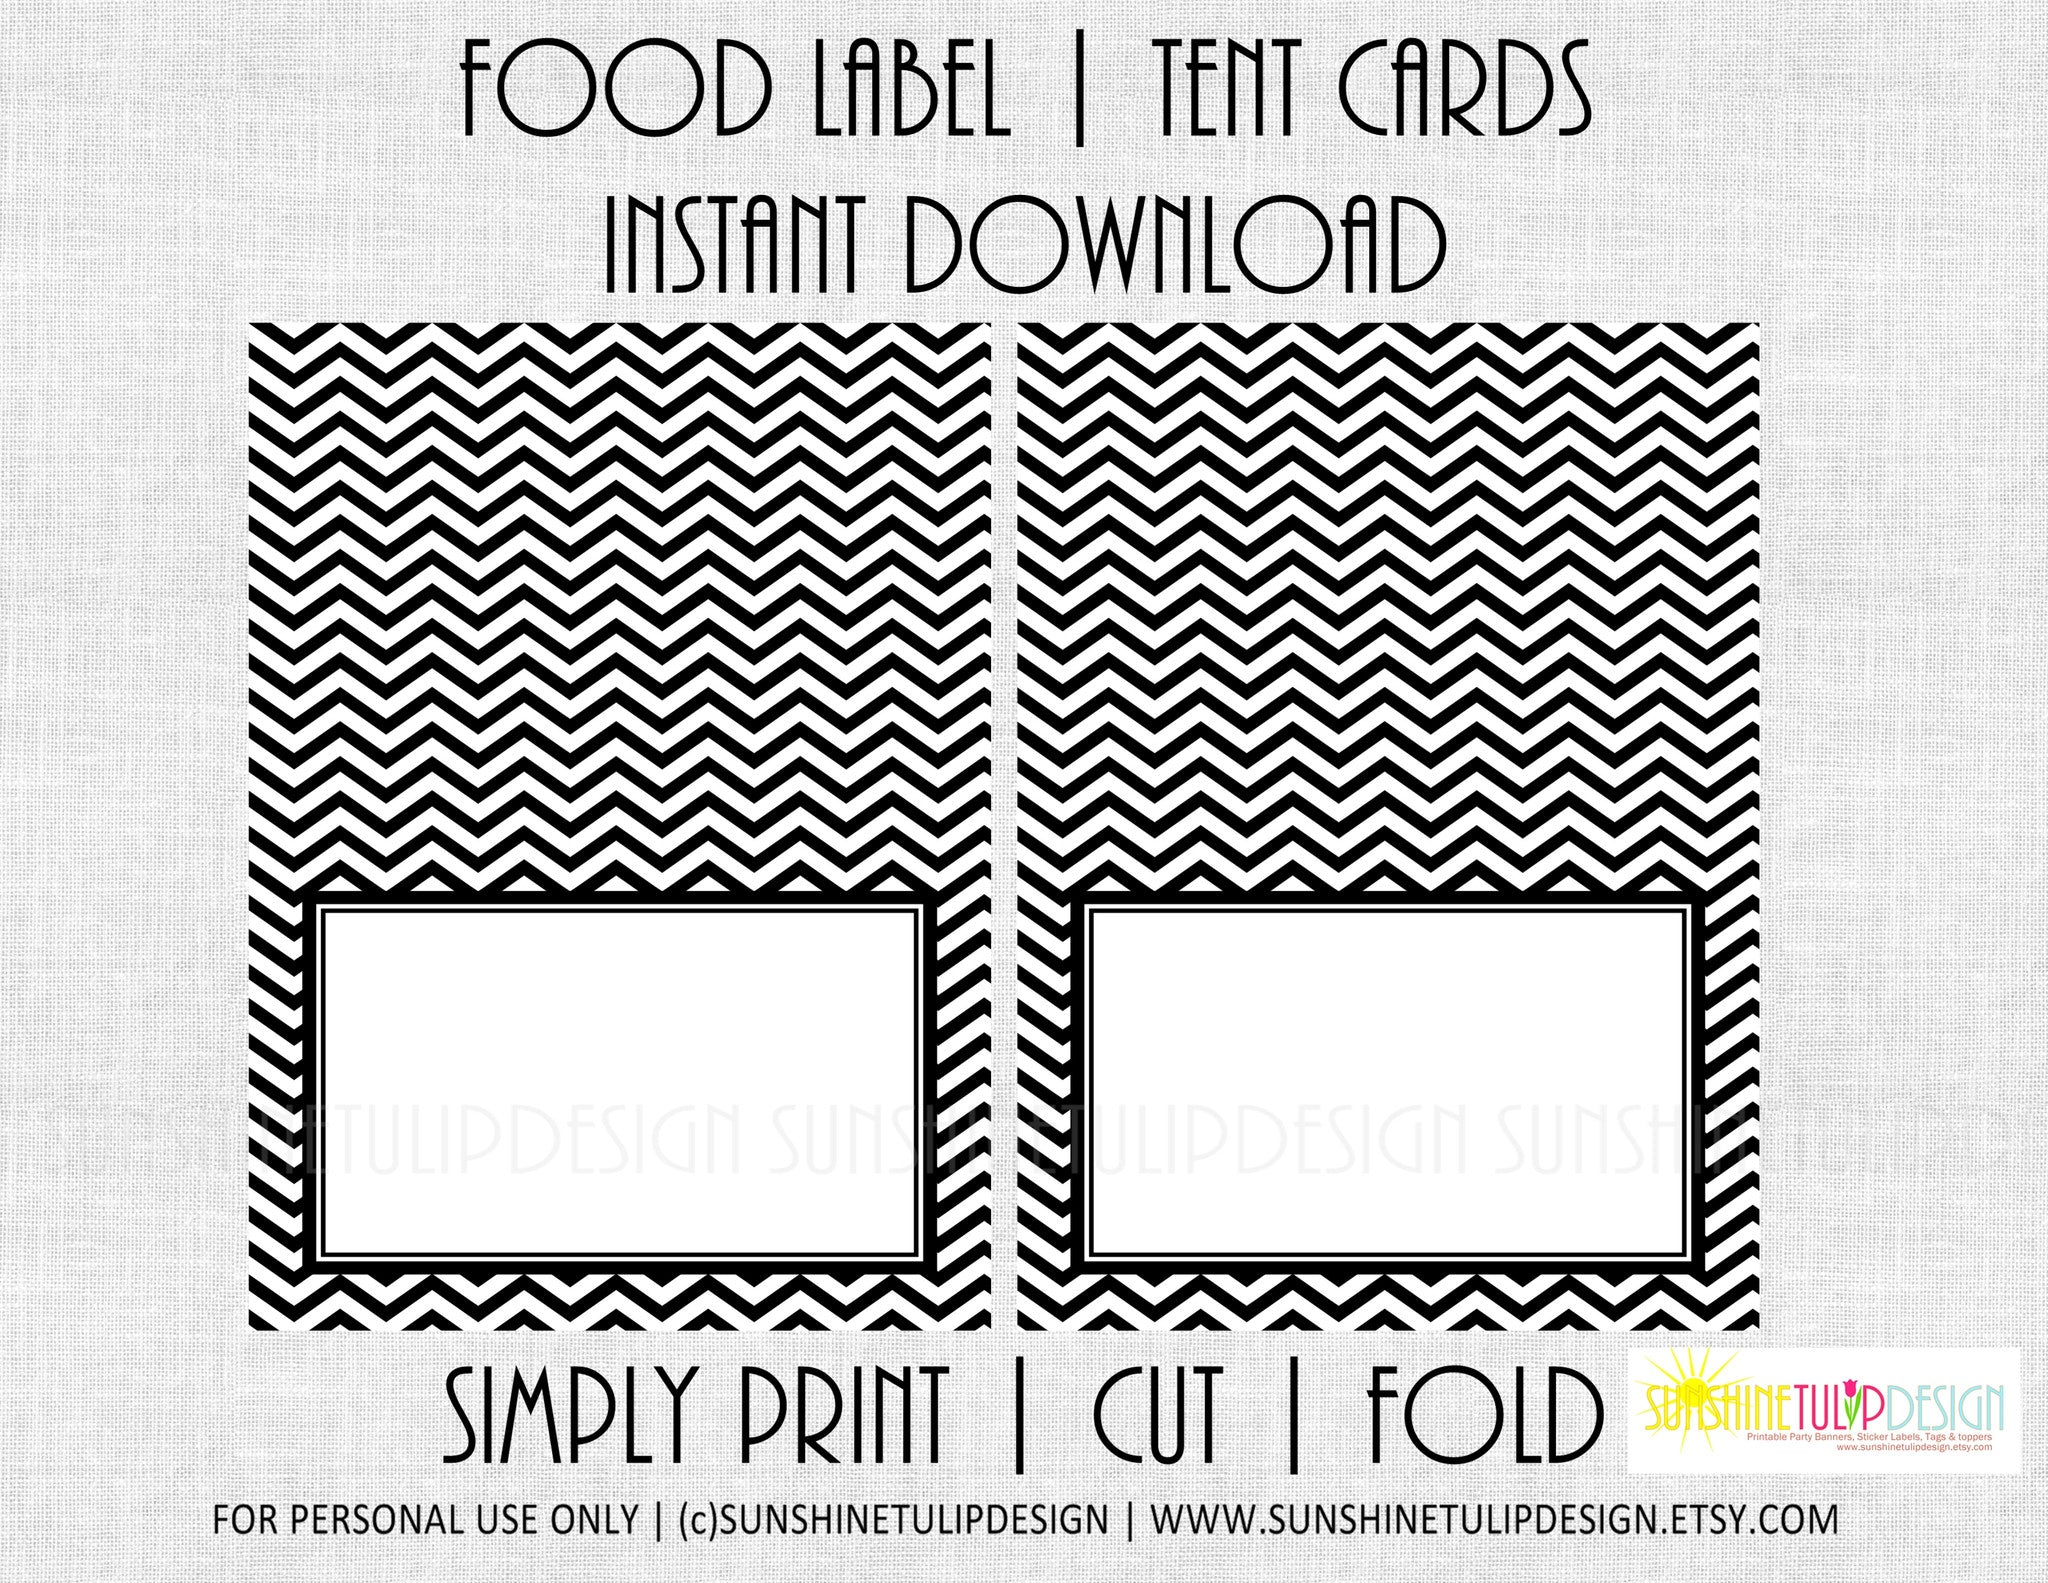 picture about Printables Food known as Printable Food stuff Label Tent Playing cards Black White Chevron All Get together playing cards by means of SUNSHINETULIPDESIGN